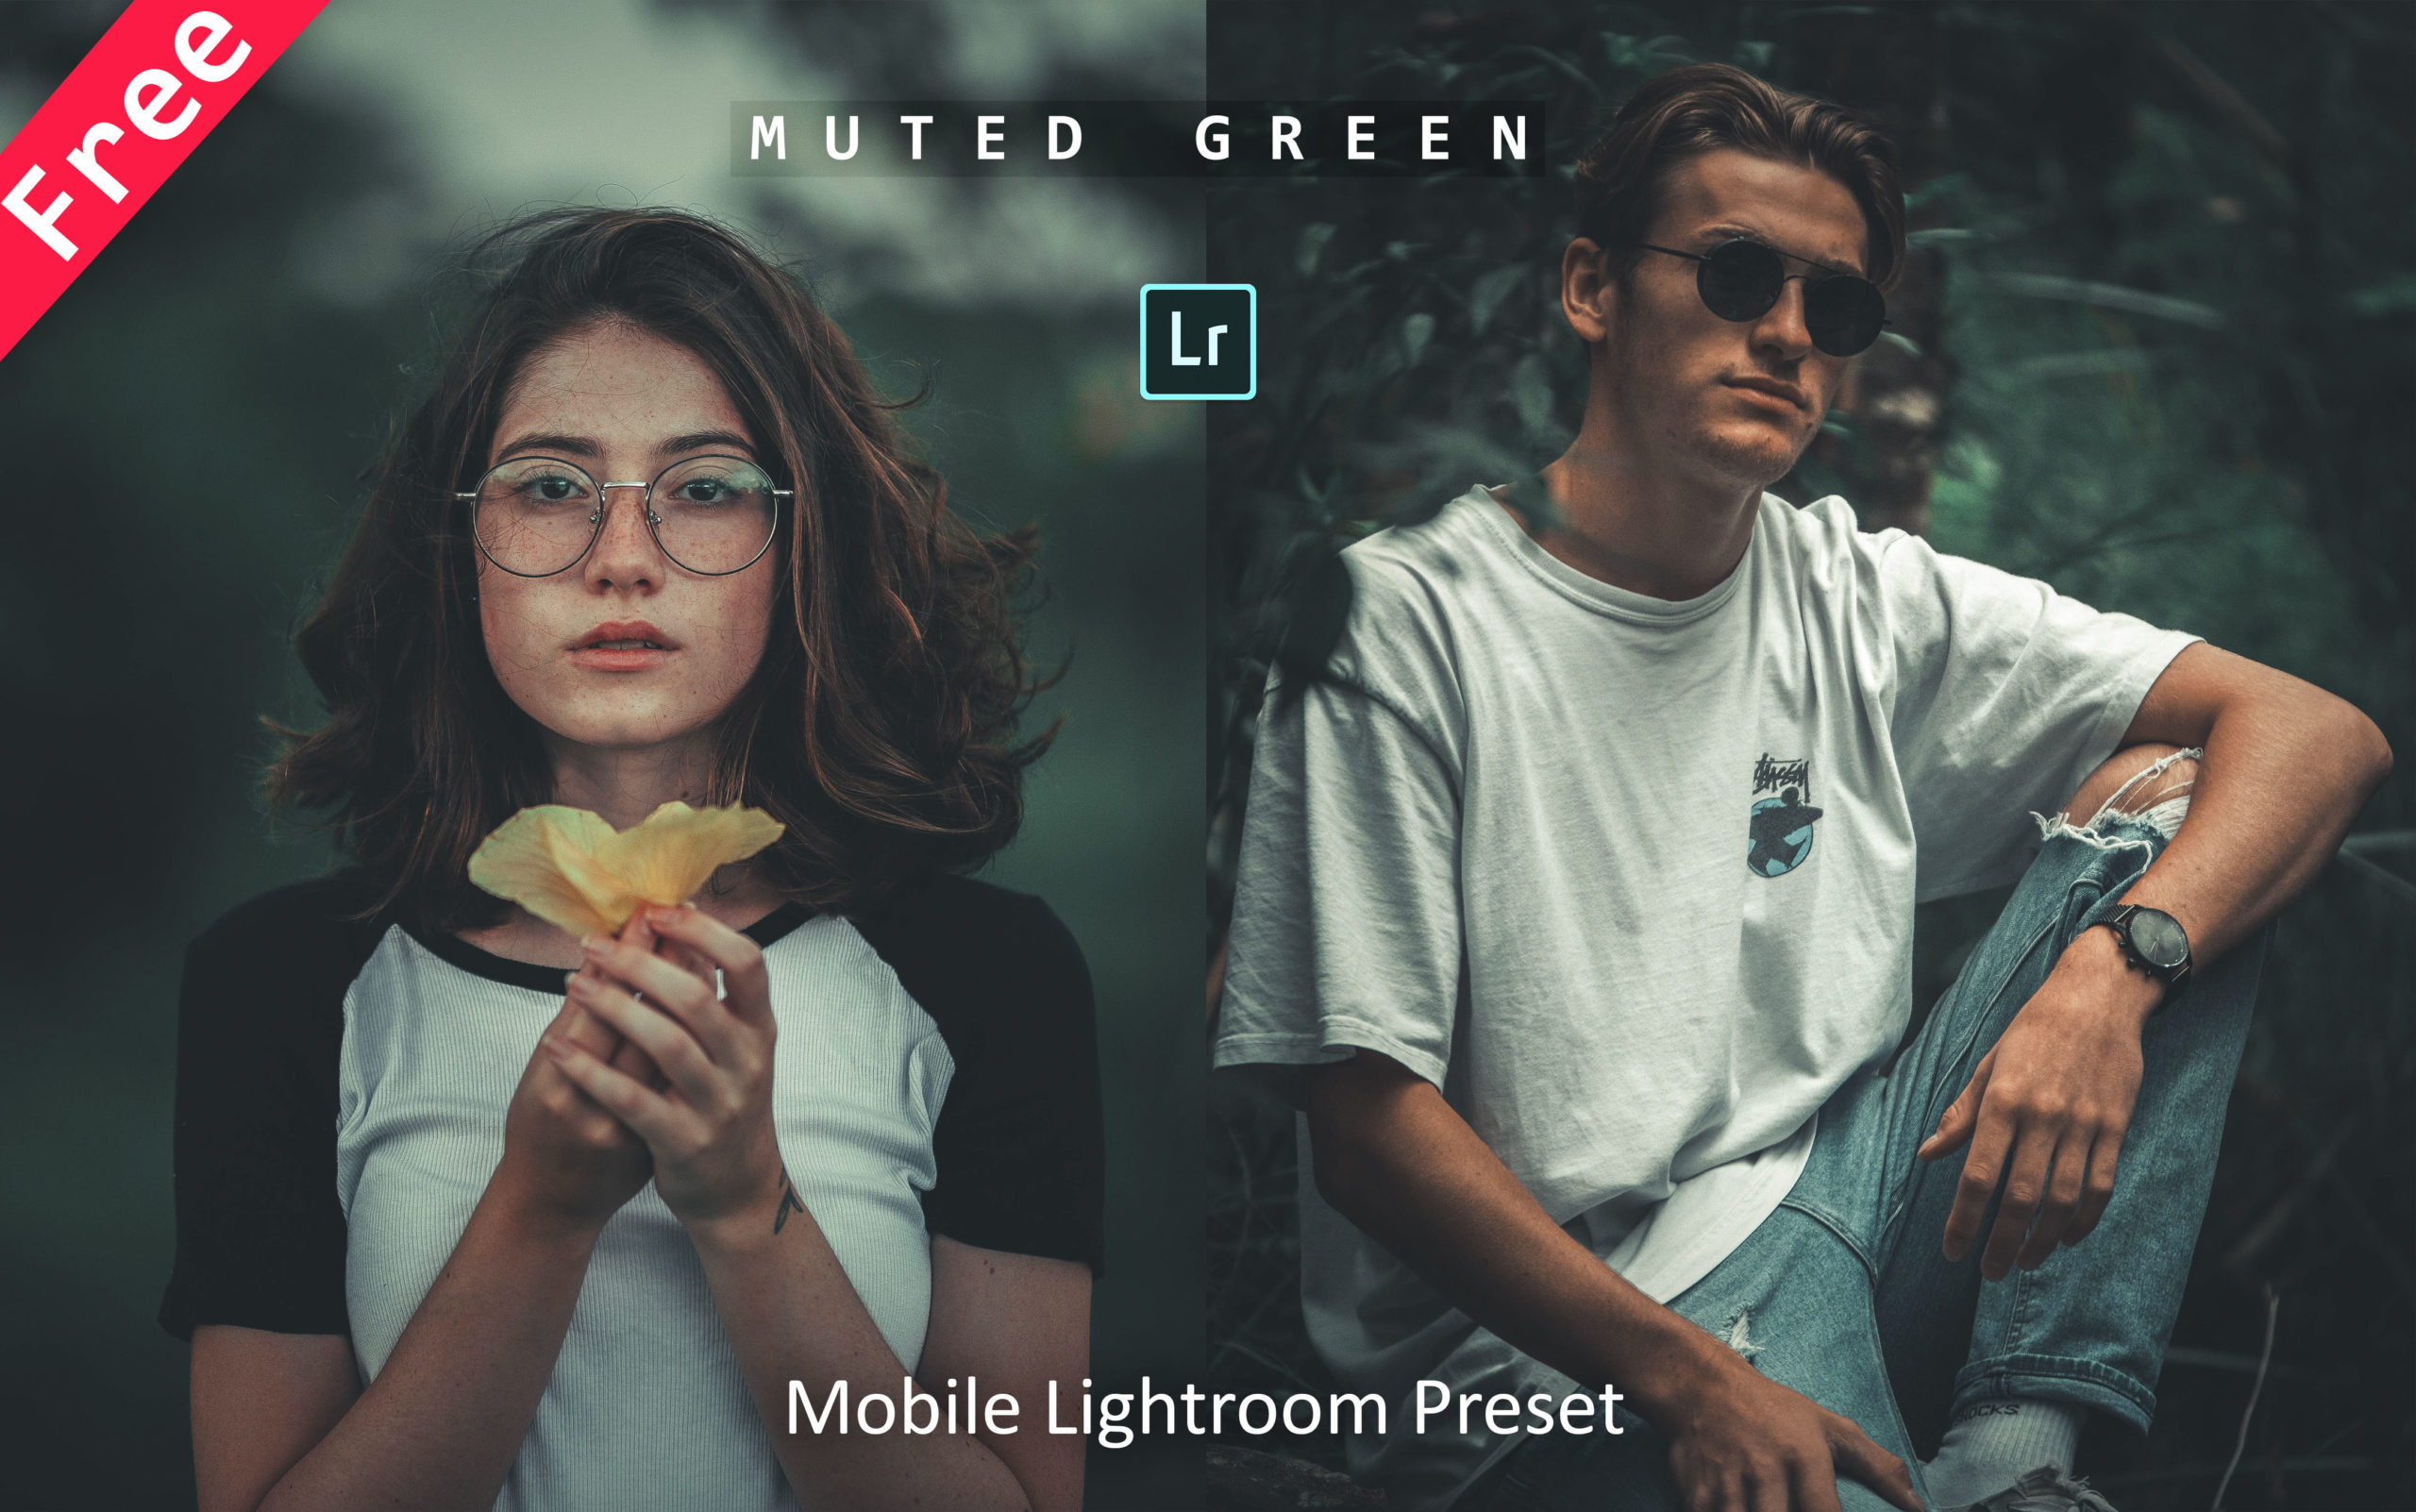 Download Muted Green Mobile Lightroom Preset for Free | How to Edit Photos Like Muted Green Effect in Mobile Lightroom